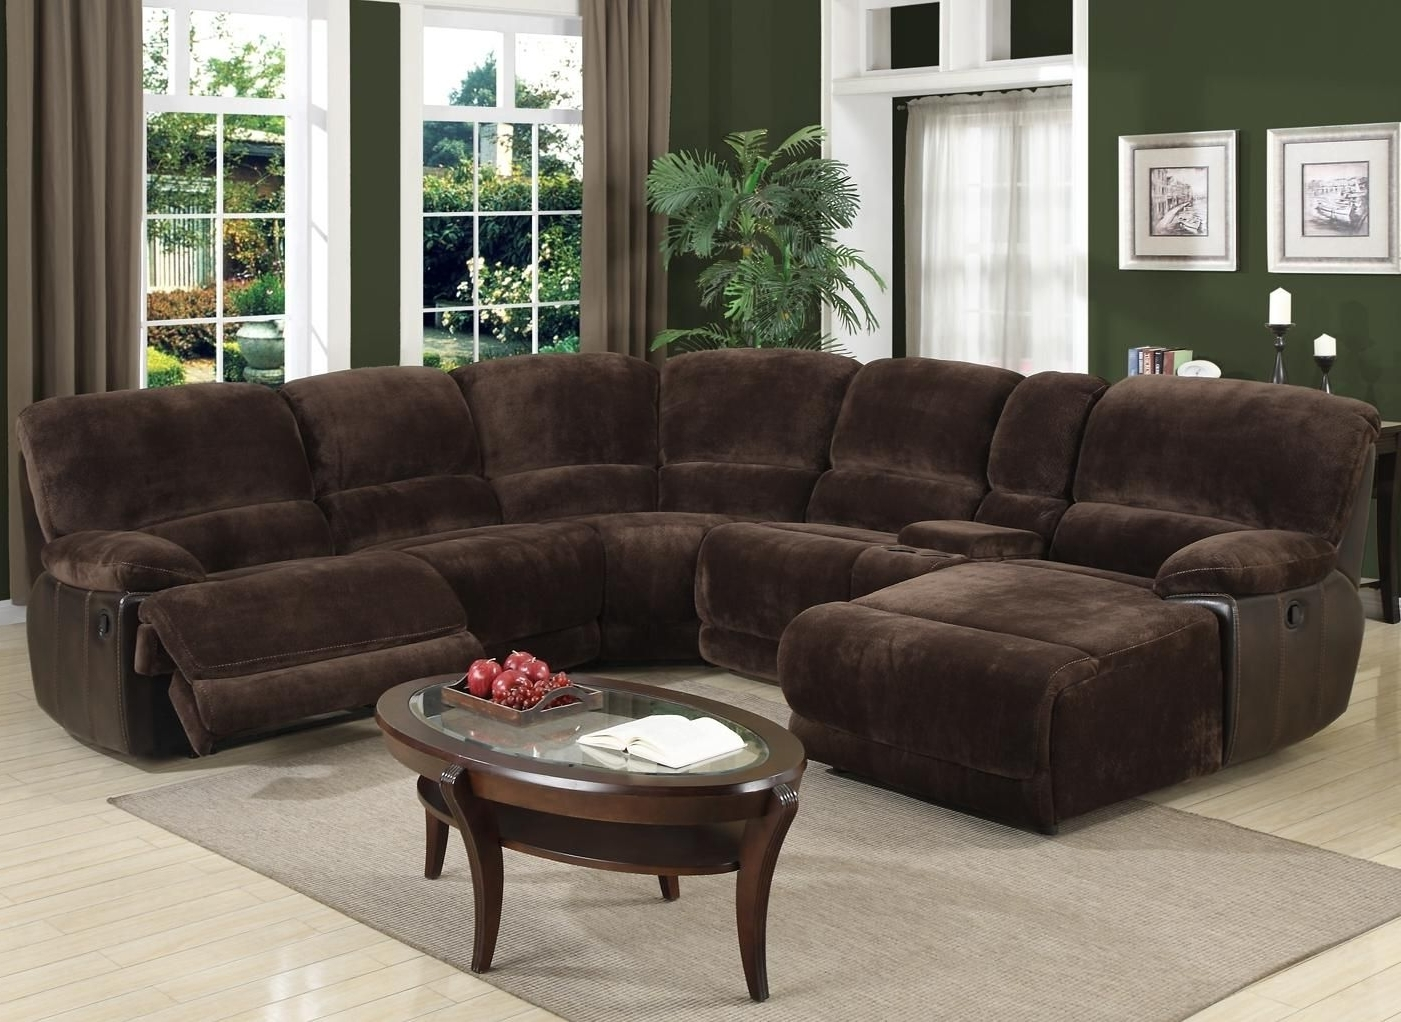 Motion Masters 3460 Casual Raf Chaise Reclining Sectional – Reeds Within Most Popular Motion Sectional Sofas (View 7 of 15)